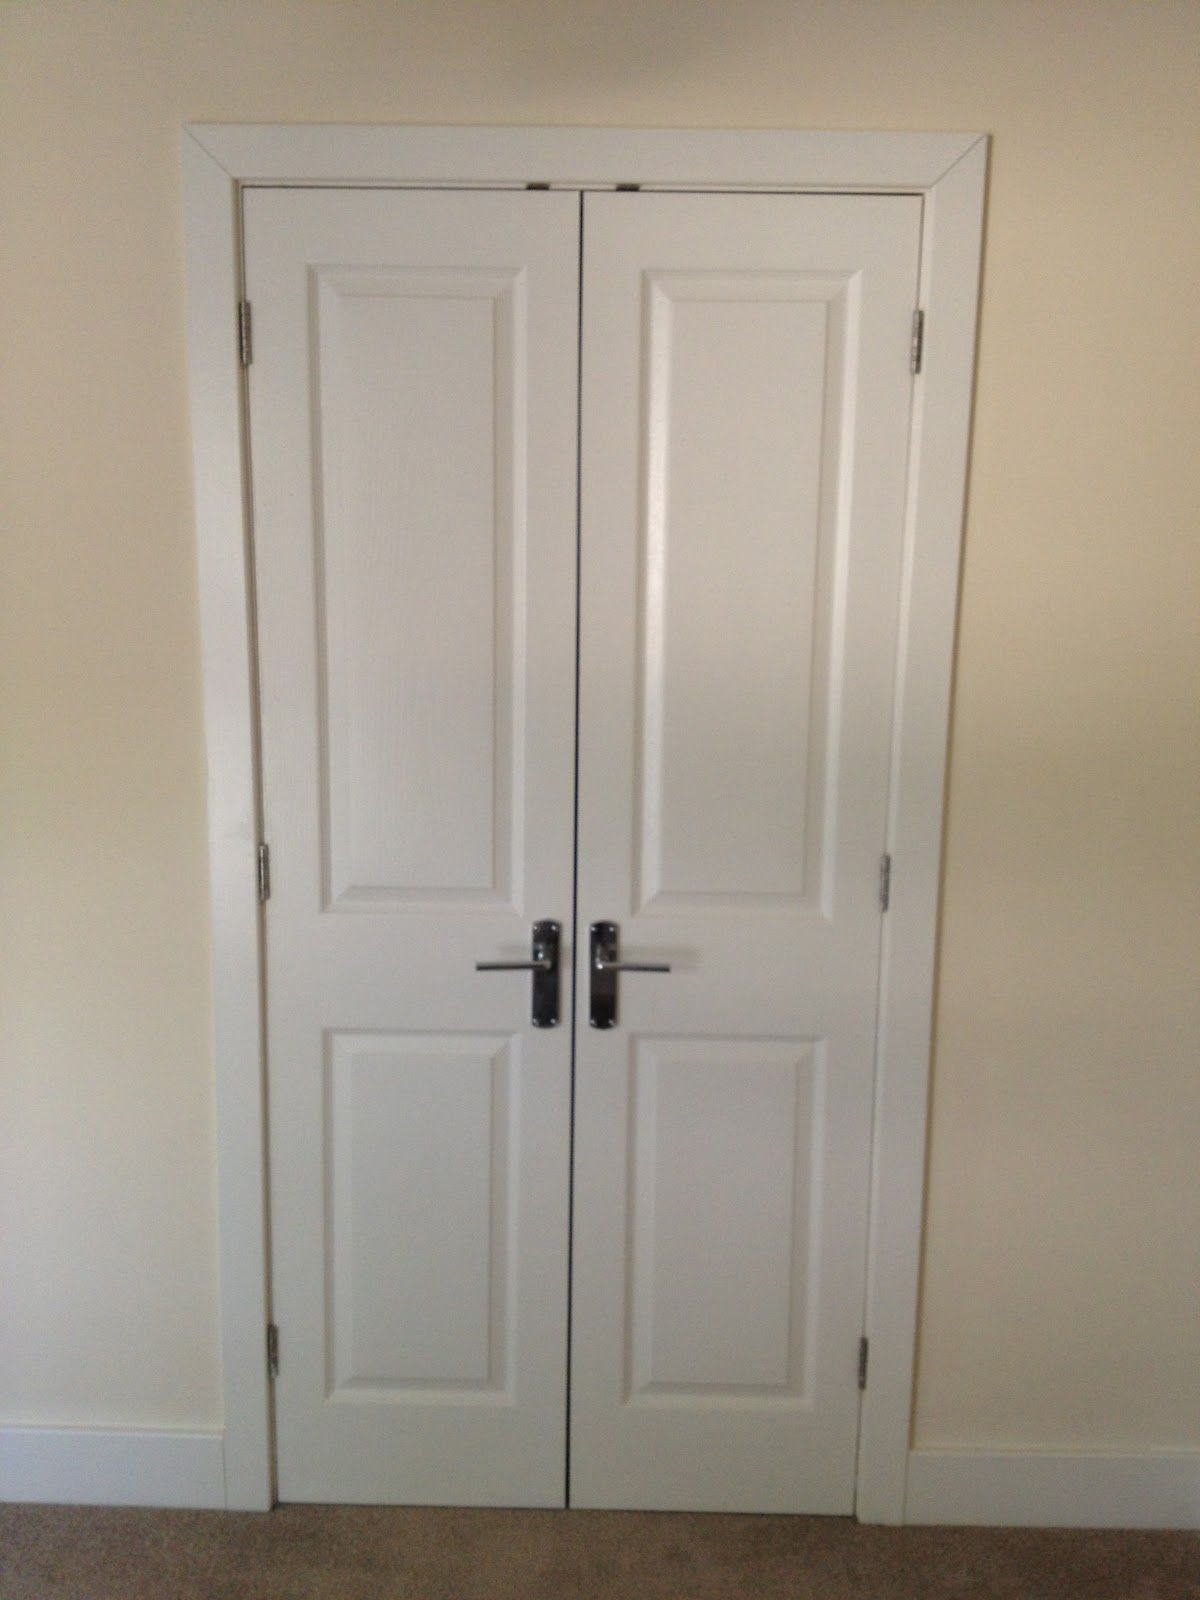 Highly Regarded Double Swing Doors Built In Wardrobe For Space Saving  Furniture In Small Closet Ideas